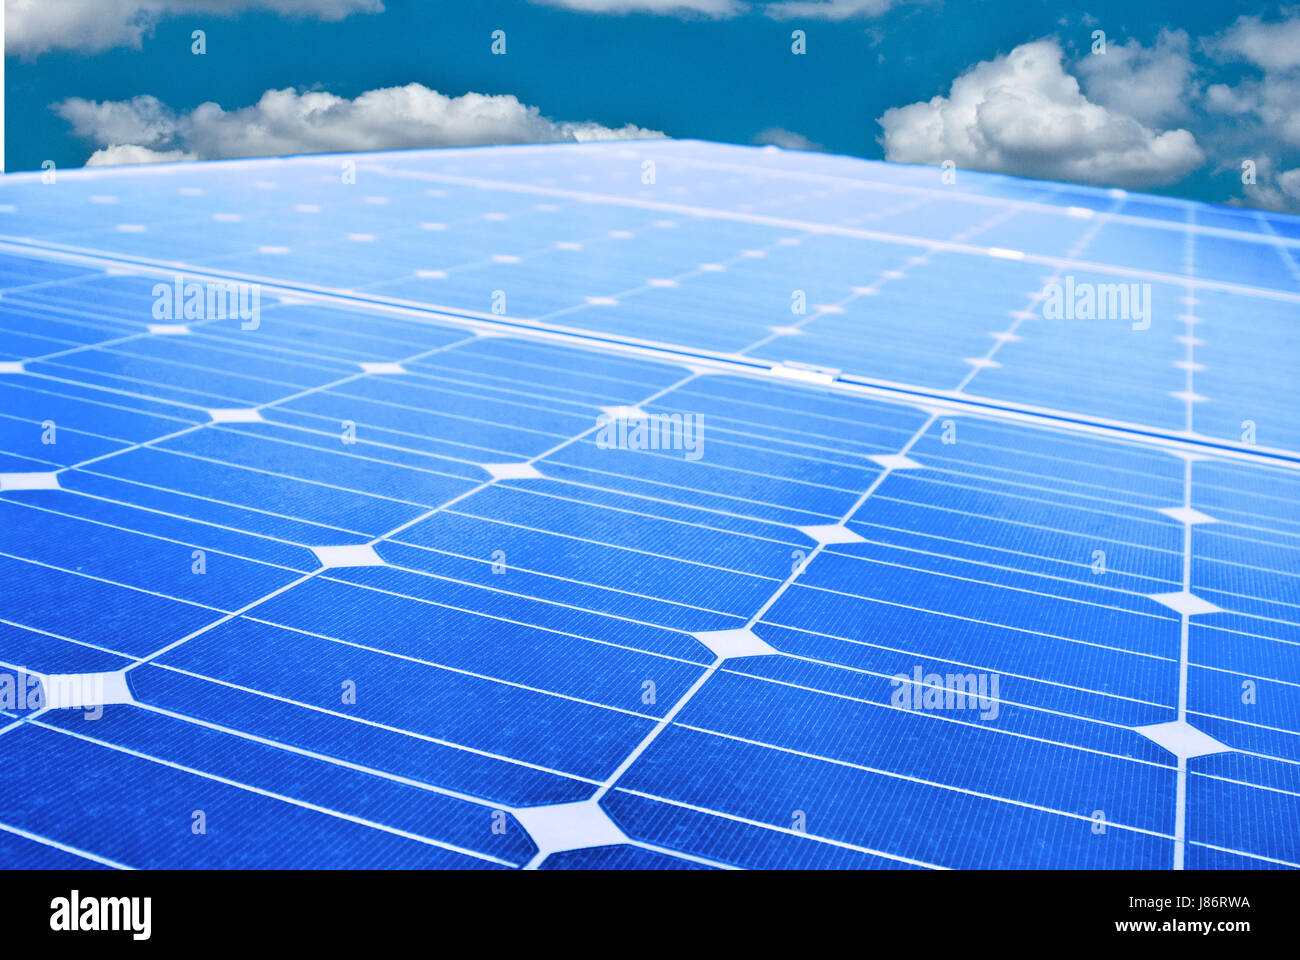 energy power electricity electric power electric solar renewable panel width of - Stock Image